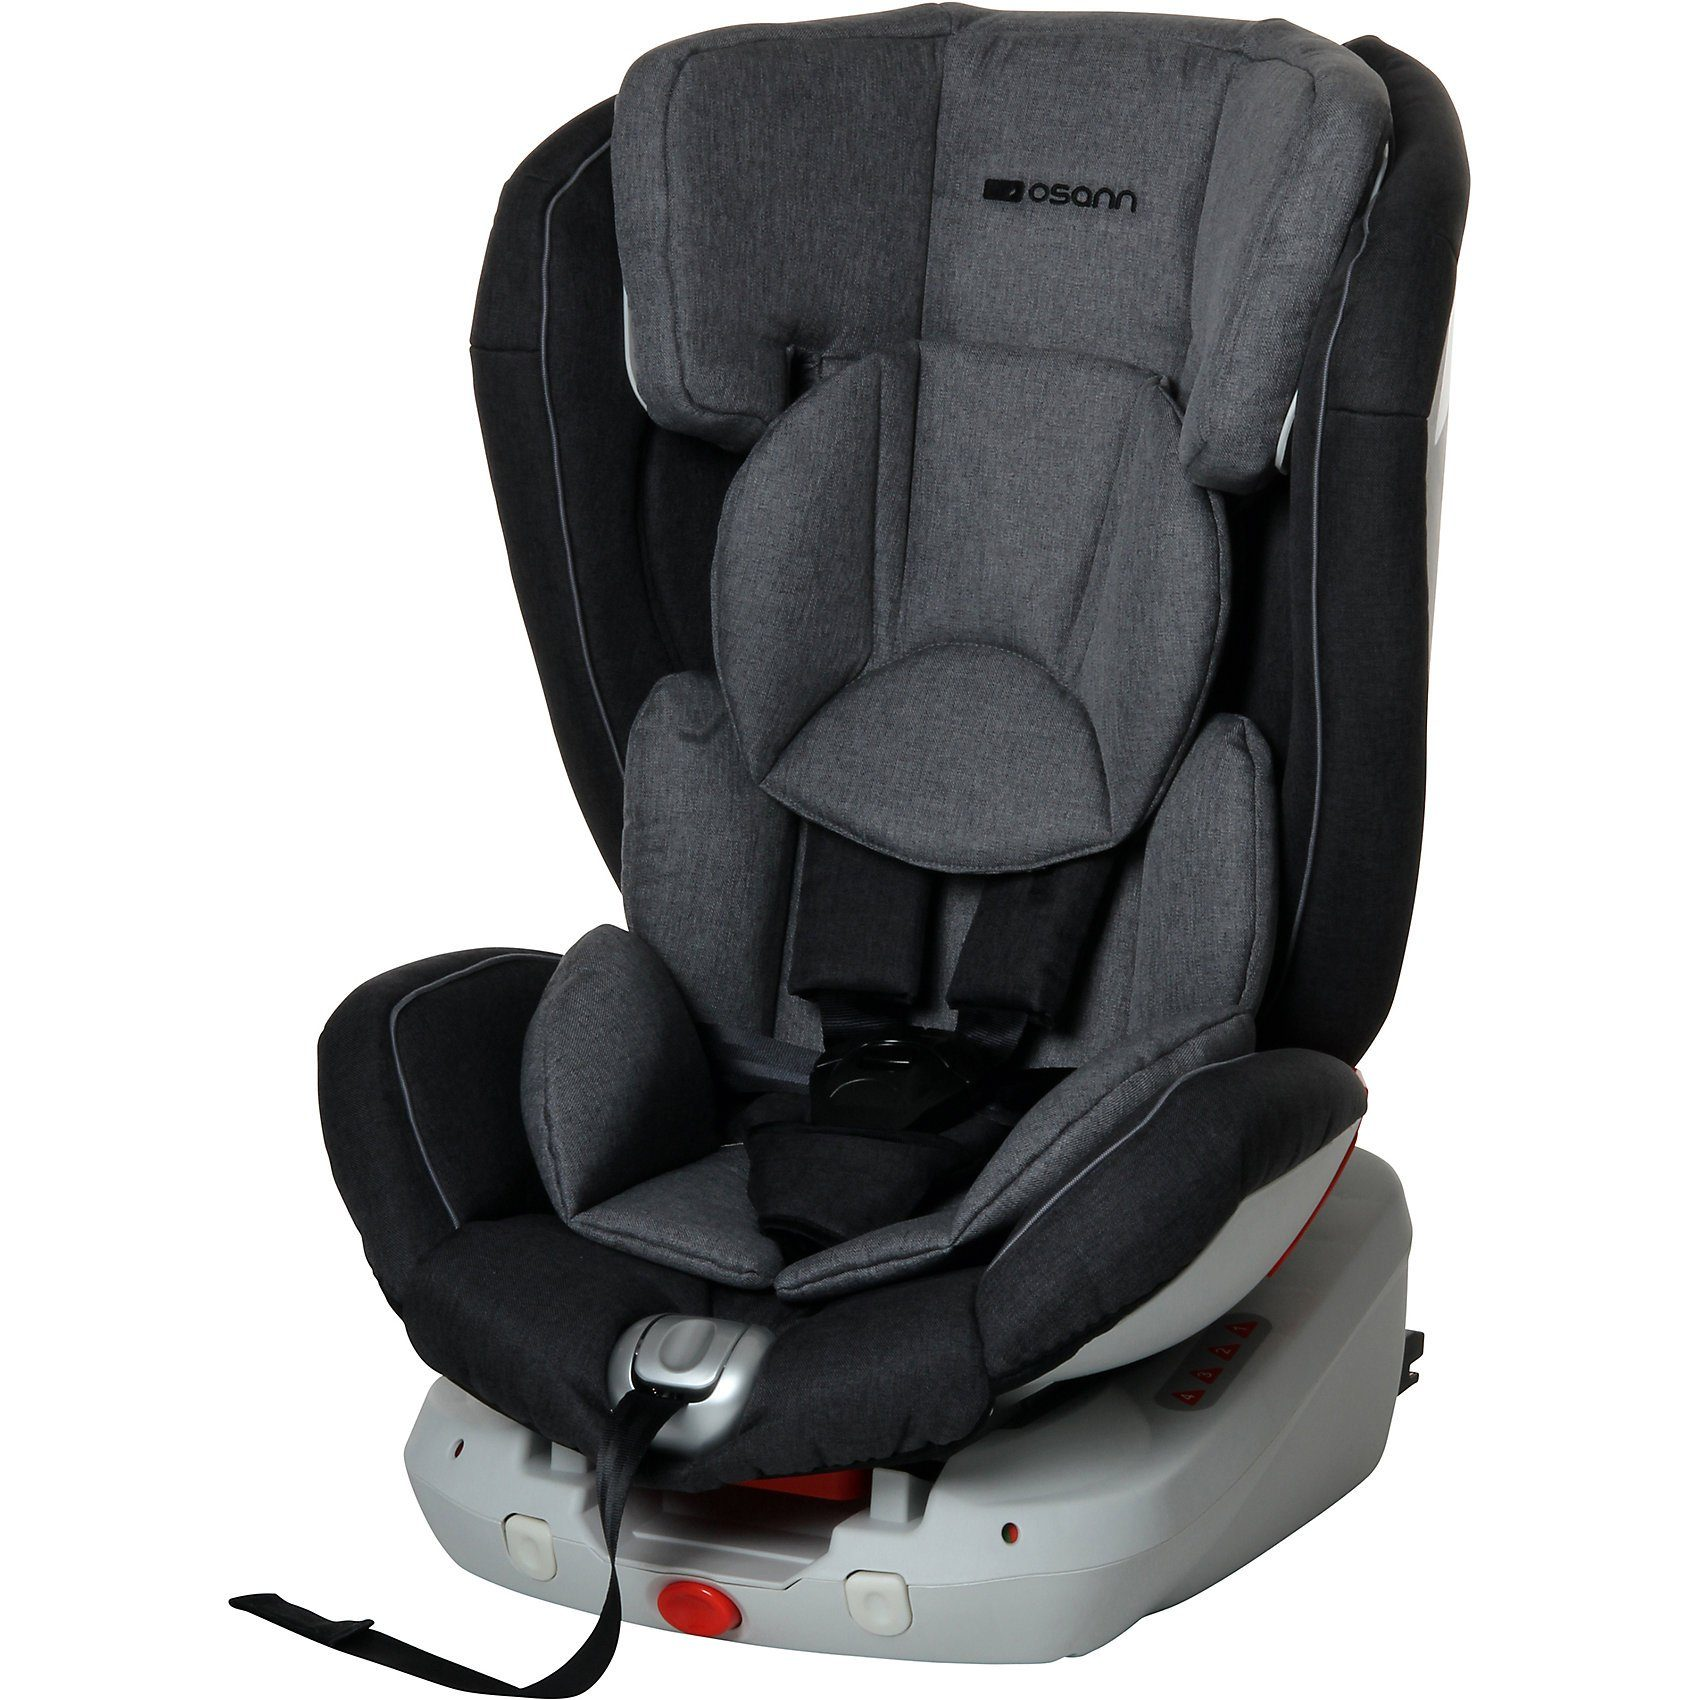 Osann Auto-Kindersitz Safety Trio, Grey Melange, 2018